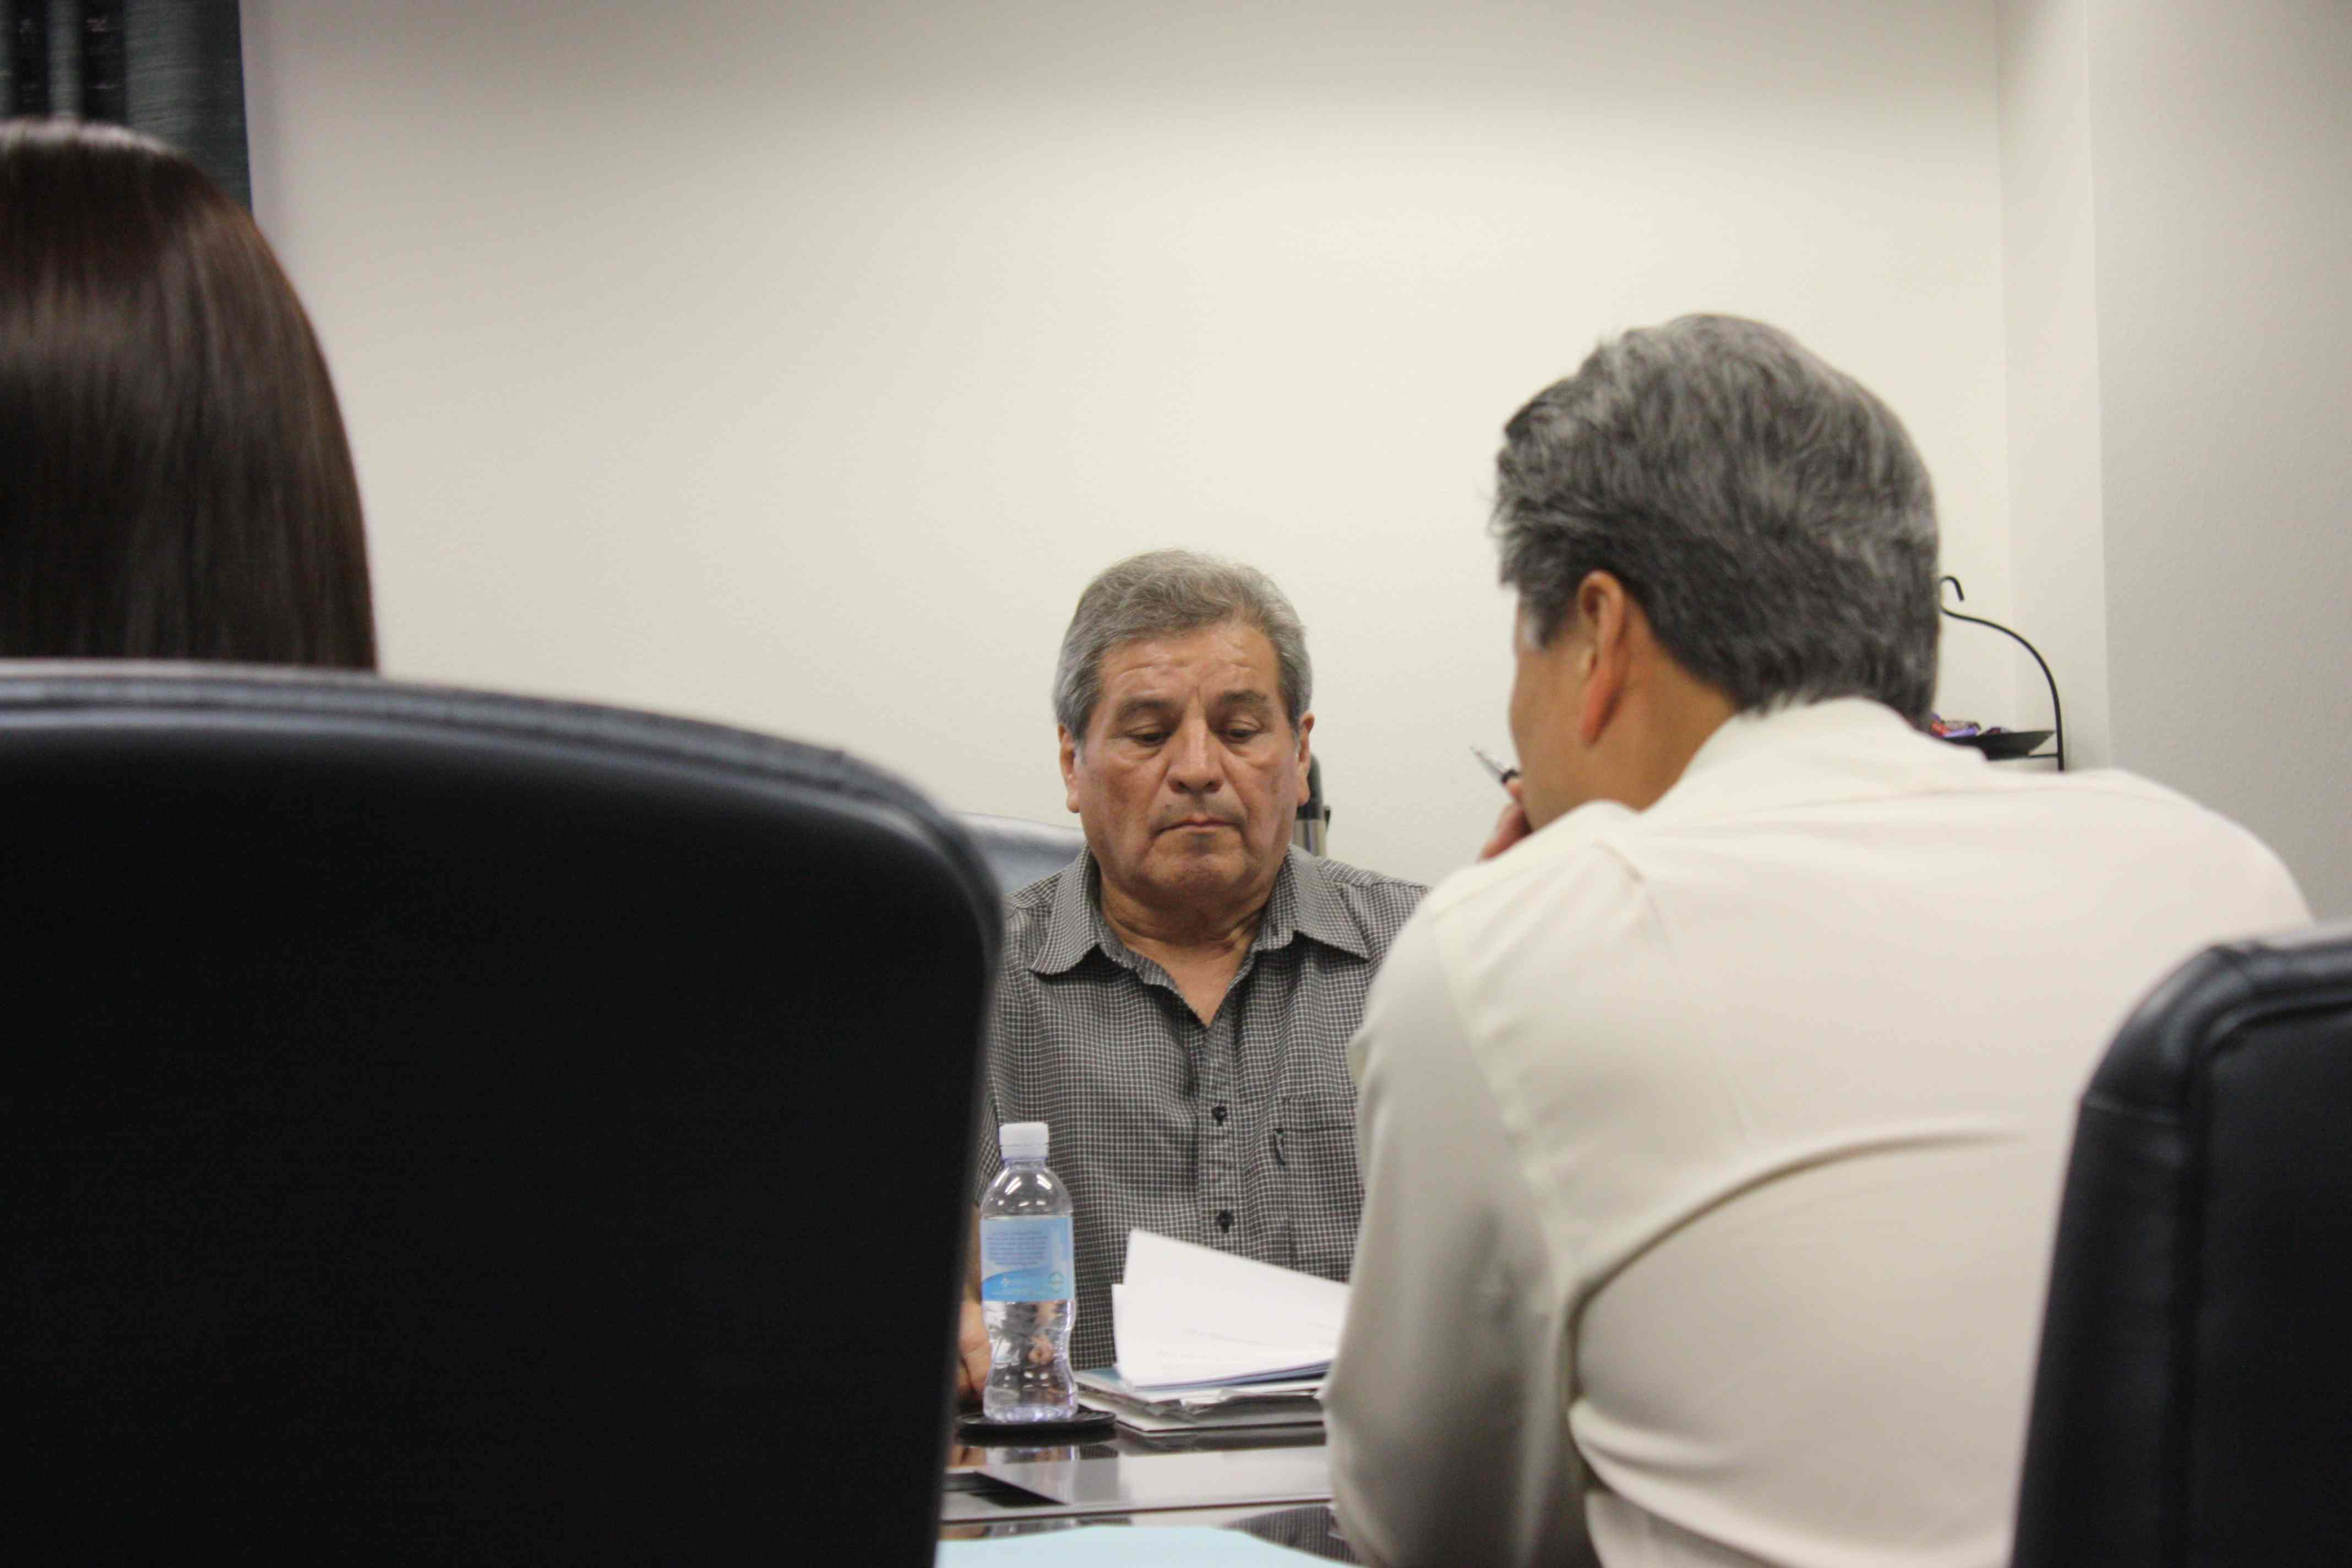 Central Basin Water District President James Roybal in Commerce after leaving LAUSD Teacher Jail.  Randy Economy Photo